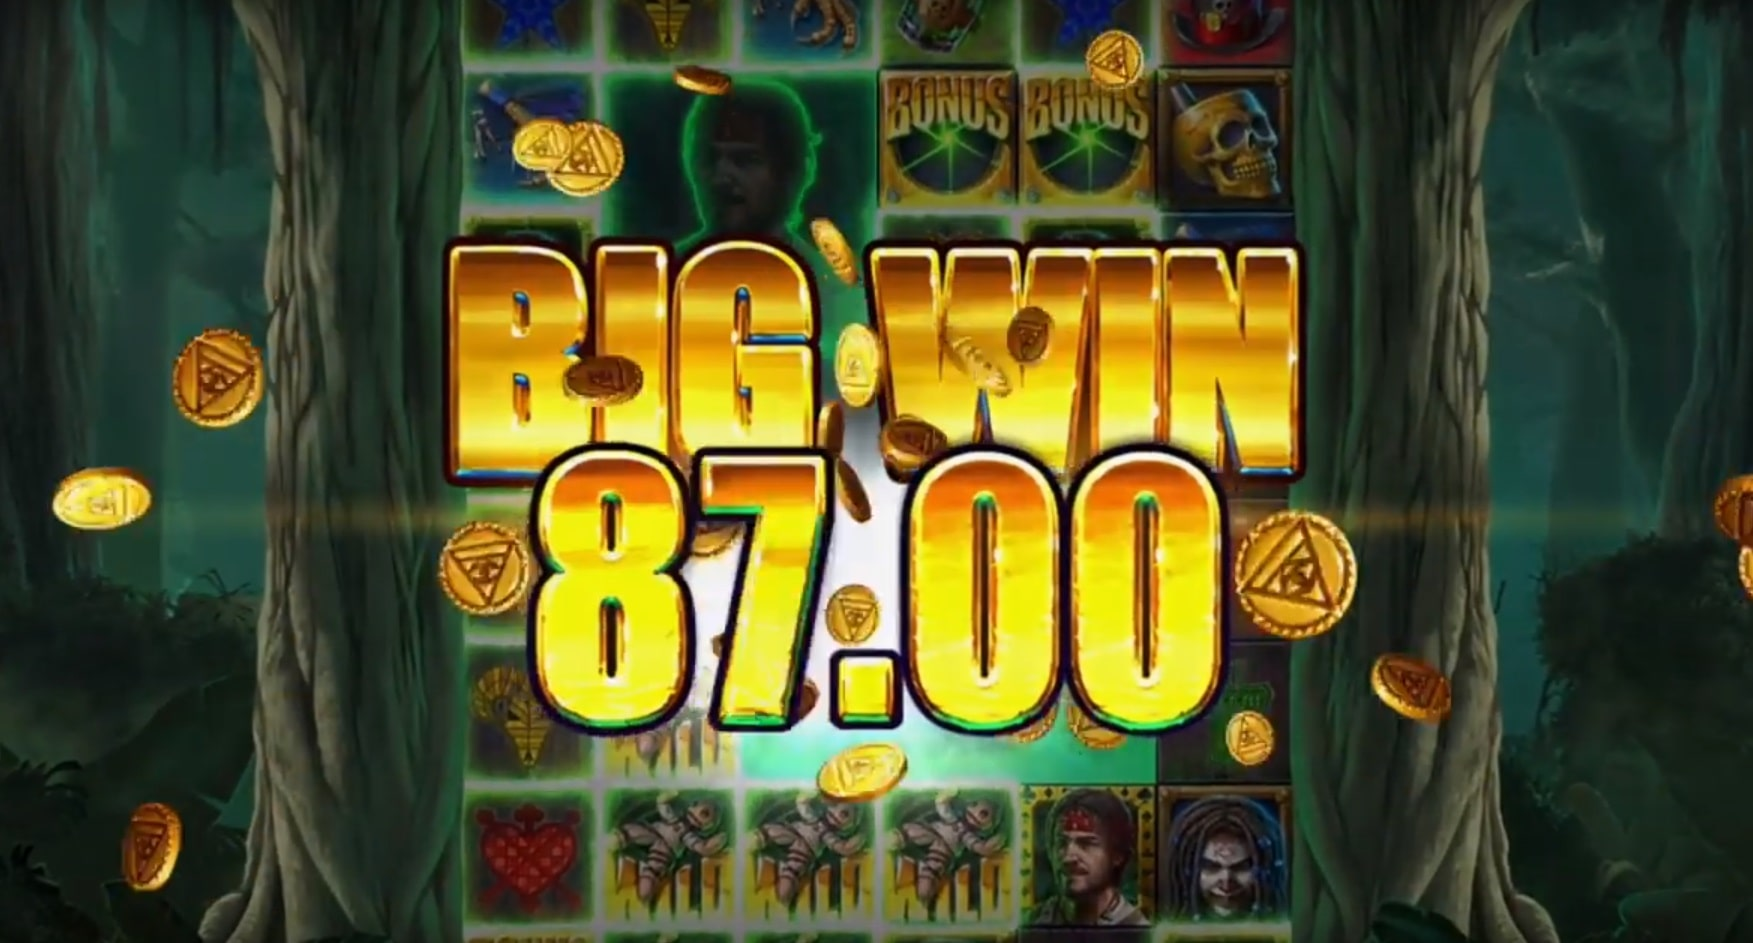 Big win featured in the Voodoo Gold slot from ELK Studios, one of the best new October 2019 slots.